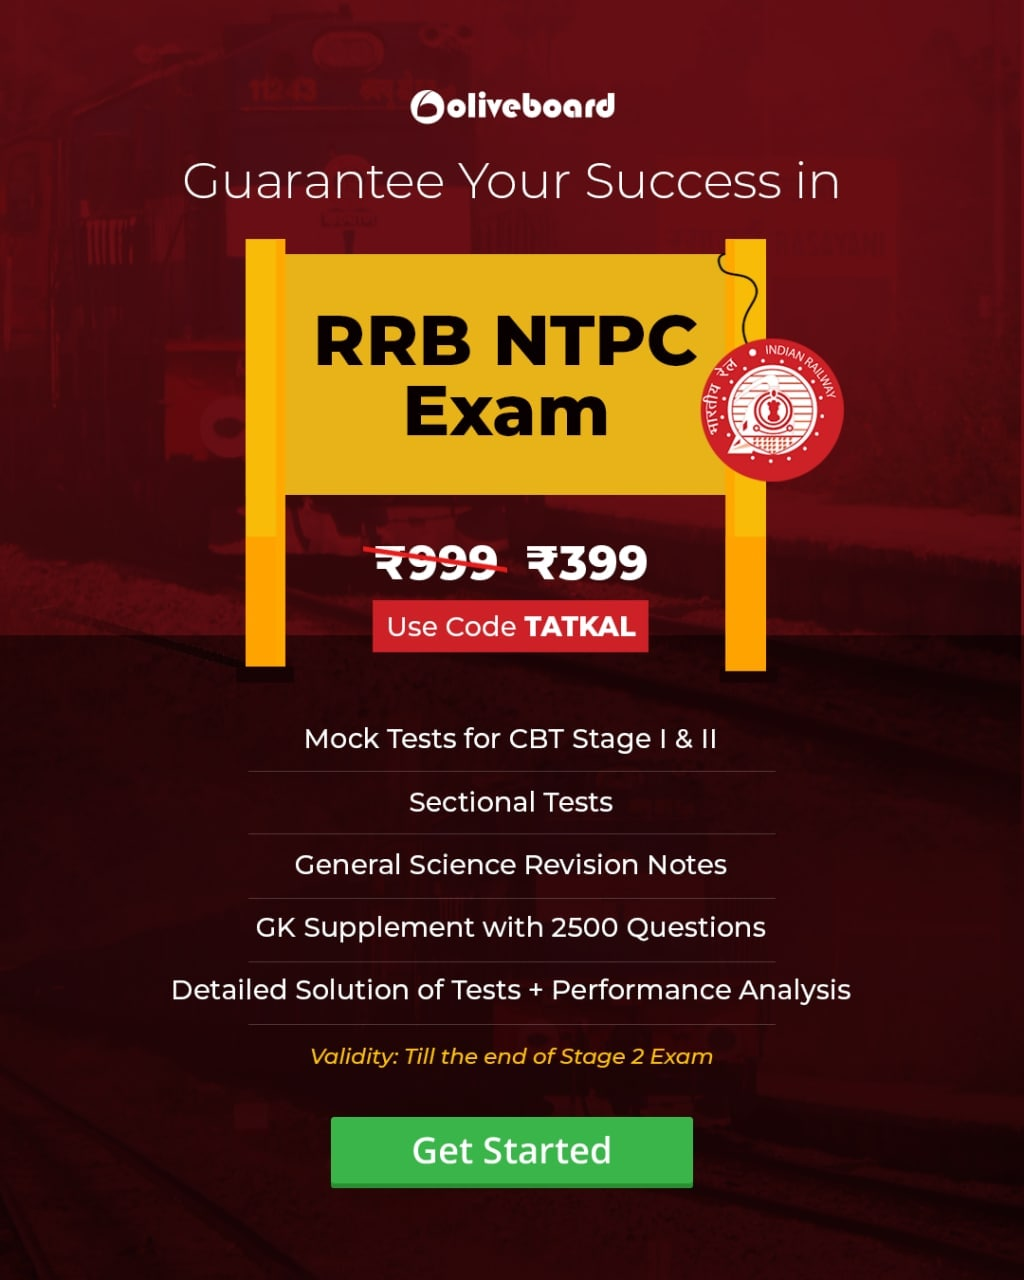 RRB NTPC Normalization Marks